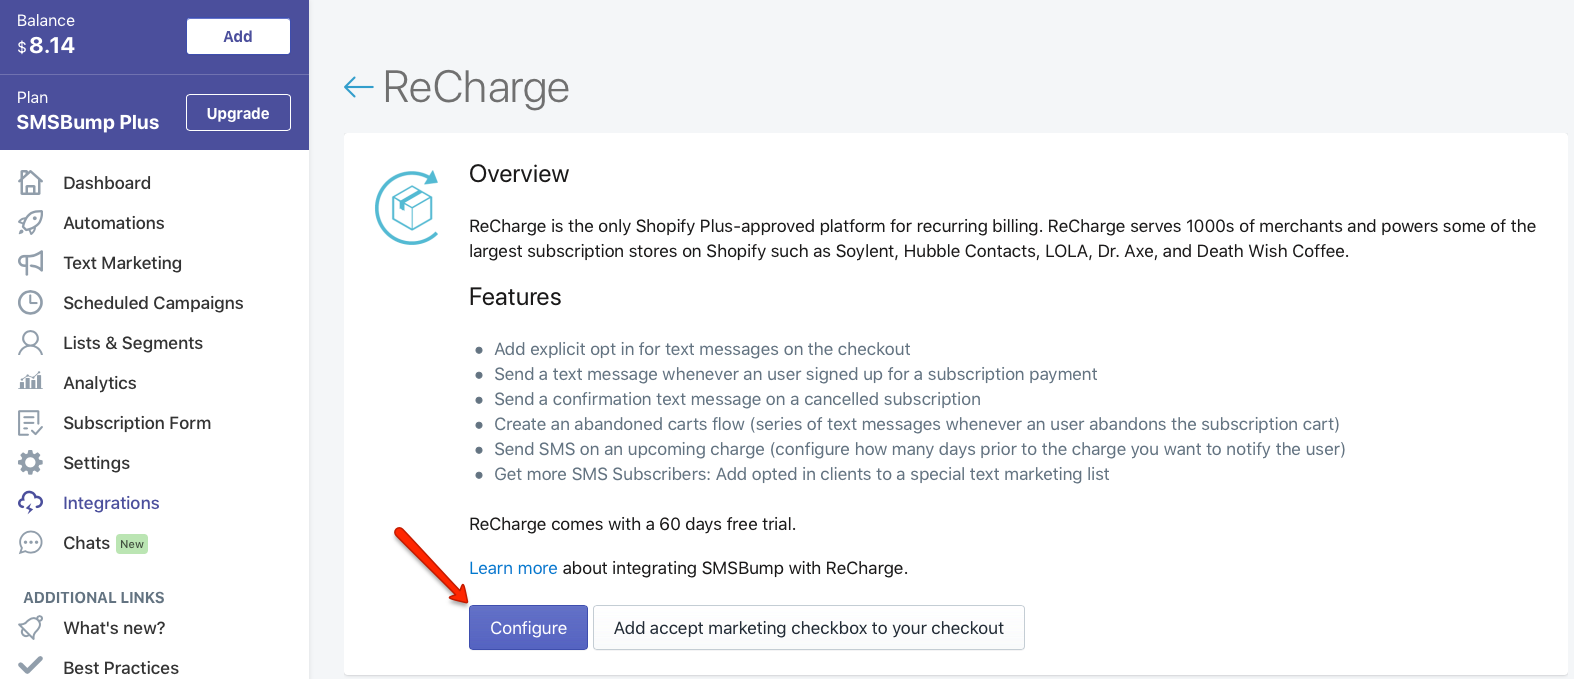 SMSBump: Configure ReCharge App in Shopify